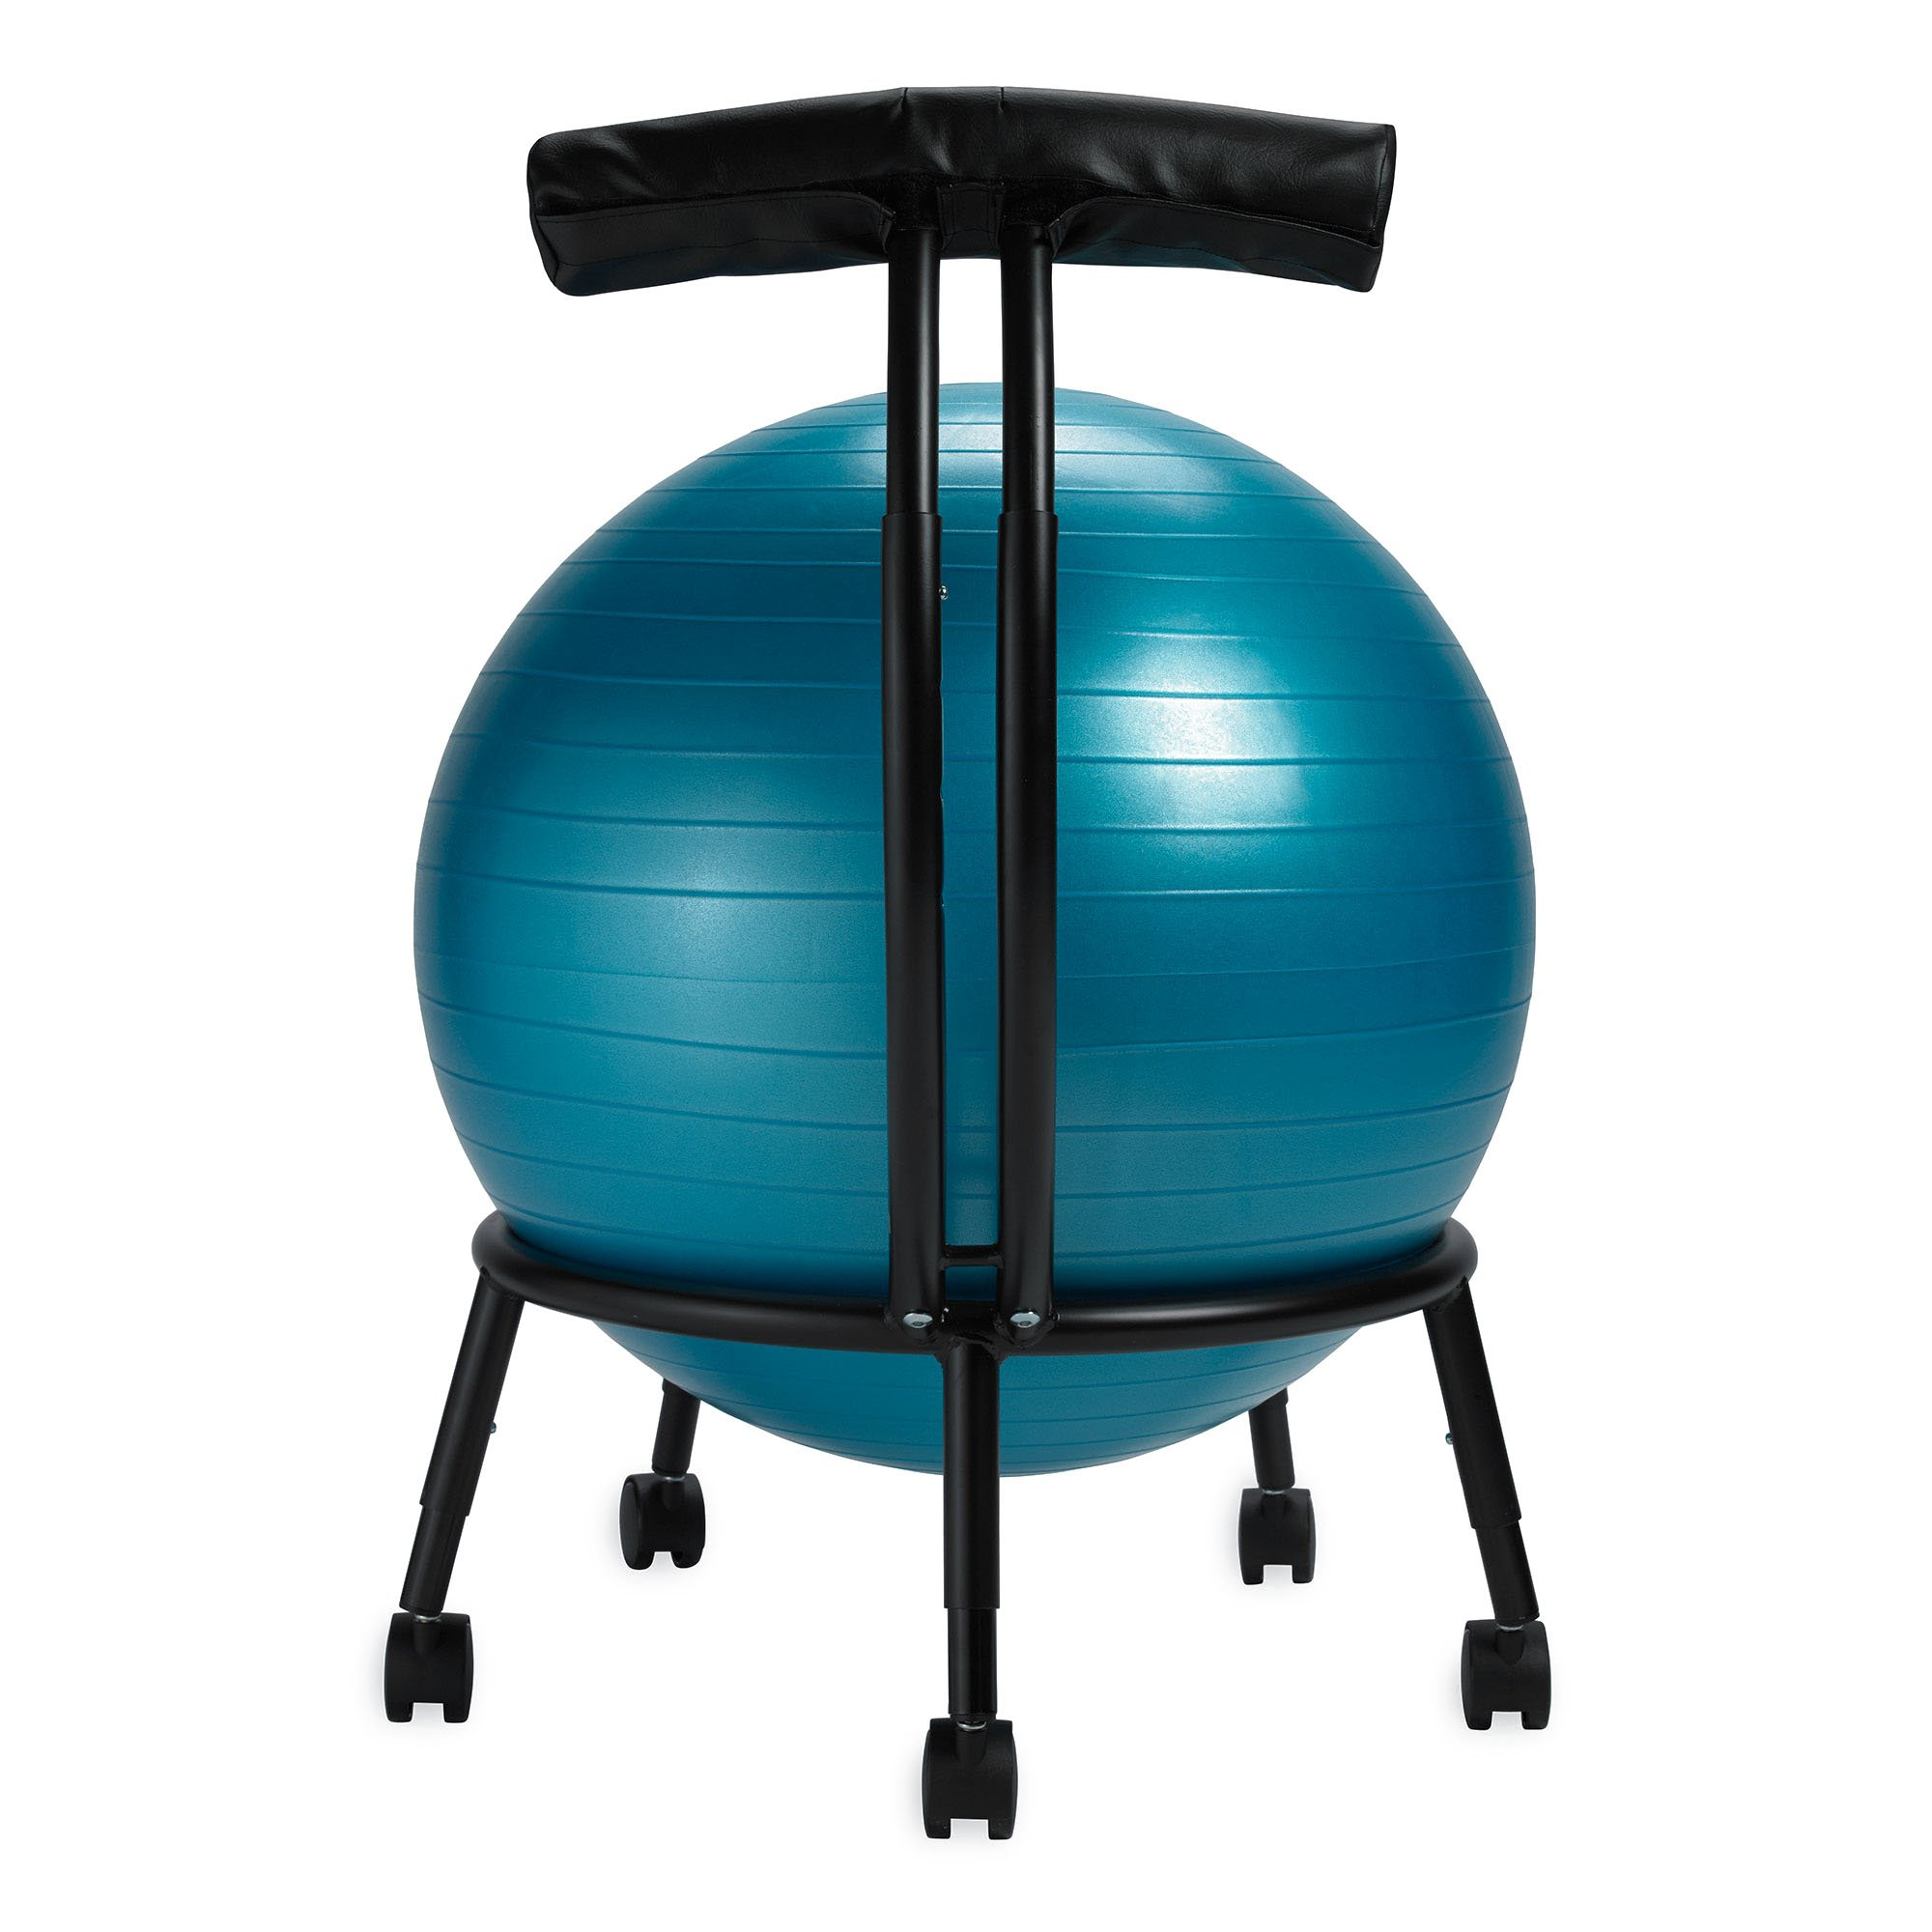 Balance Ball Chair Exercise Stability Yoga Ball Premium Ergonomic Chair for Home and Office Desk with Air Pump Exercise GuideBlack